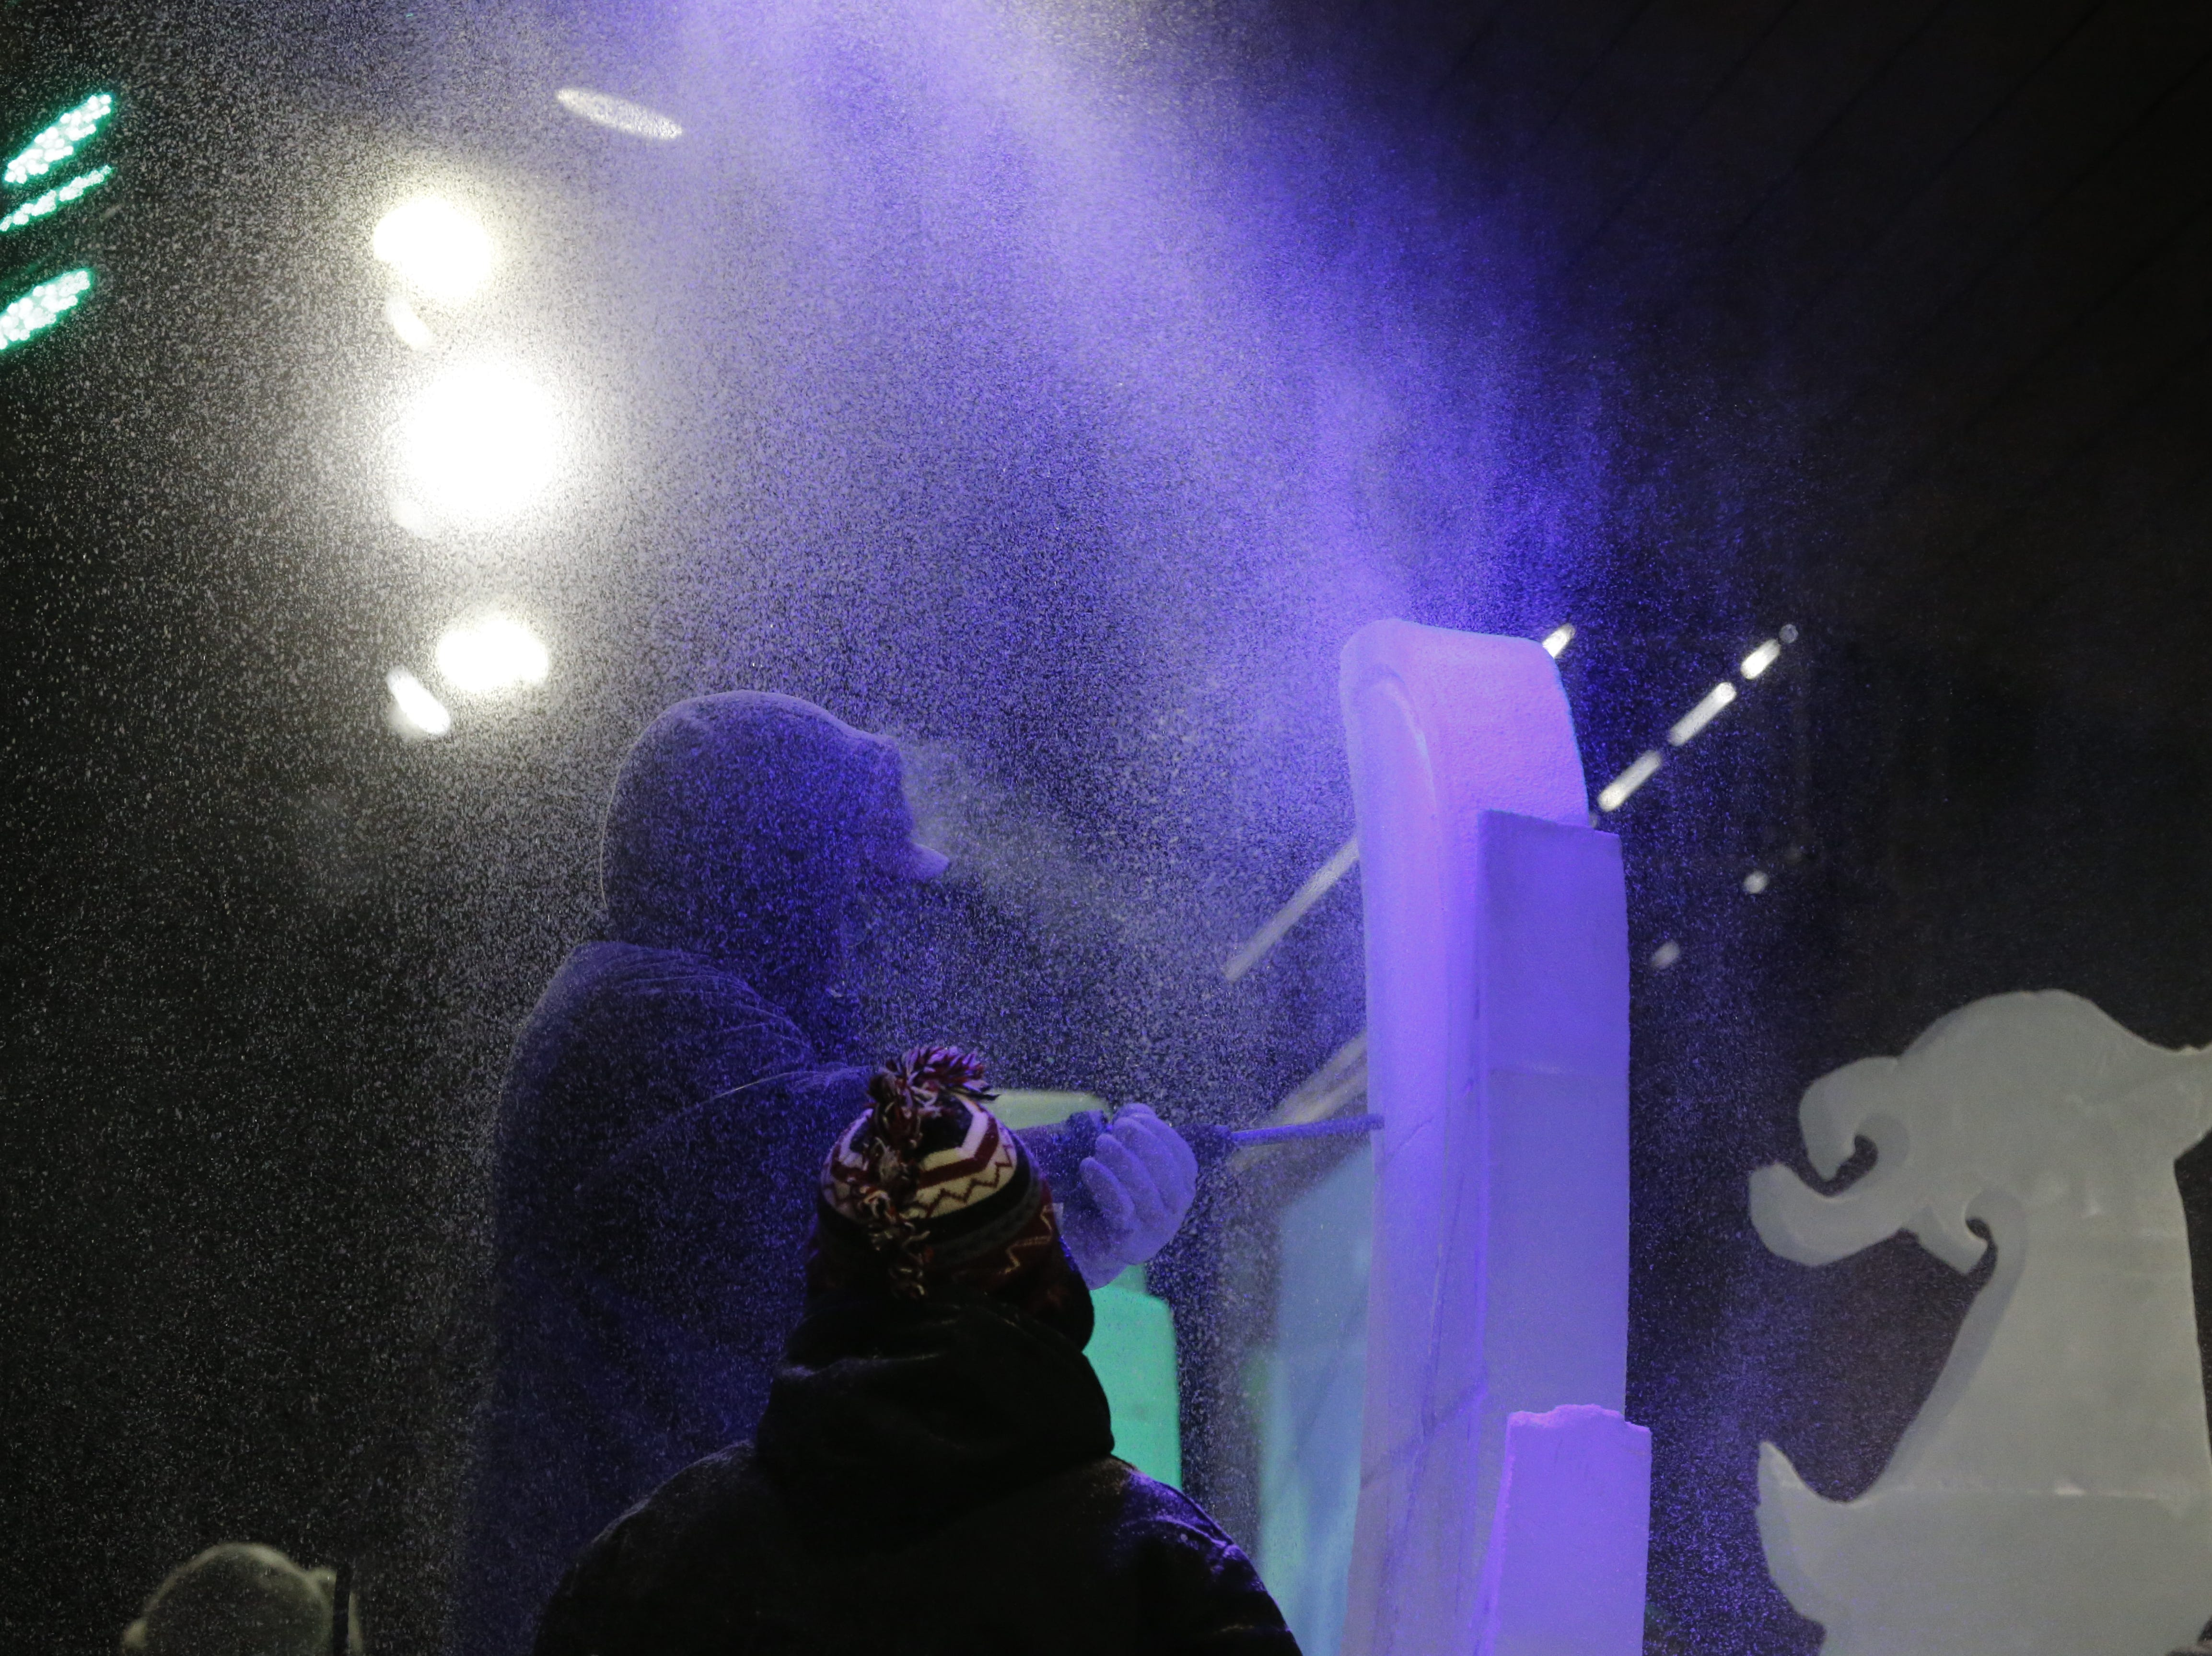 """Jack Elstro Plaza in Richmond was the site of the Meltdown Winter Ice Festival's """"Big Reveal"""" event on Jan. 25, 2019."""